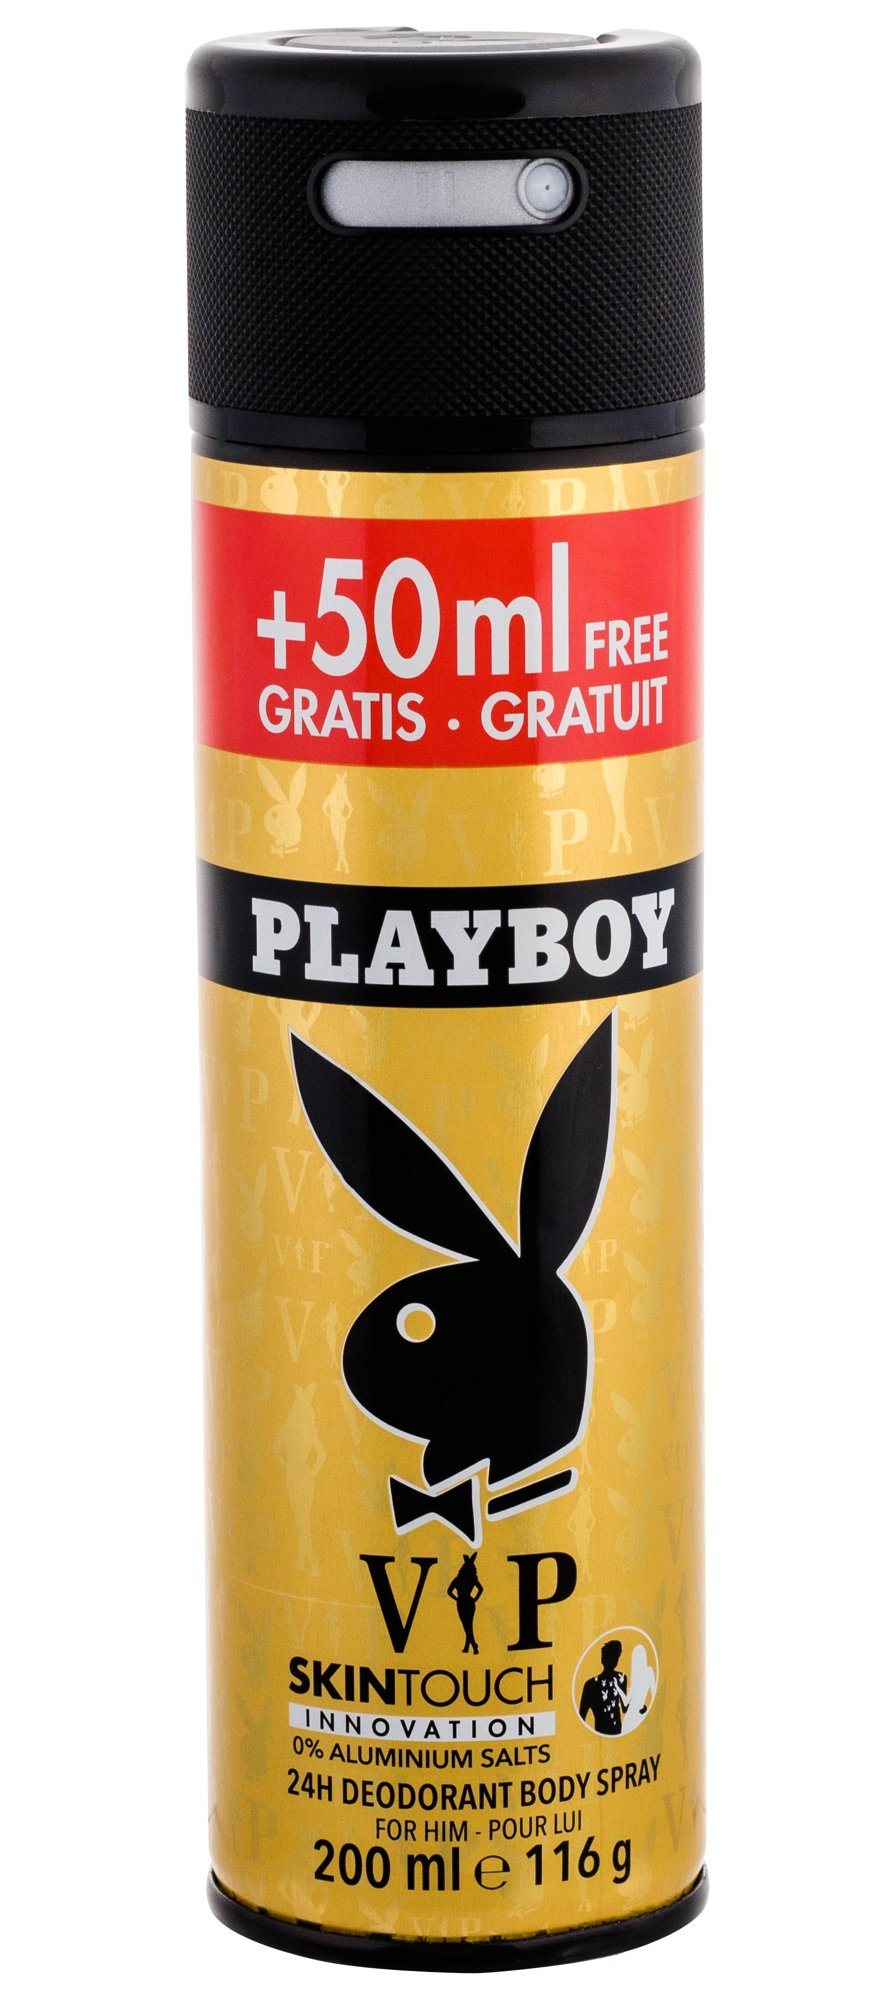 Playboy VIP For Him Deodorant 200ml